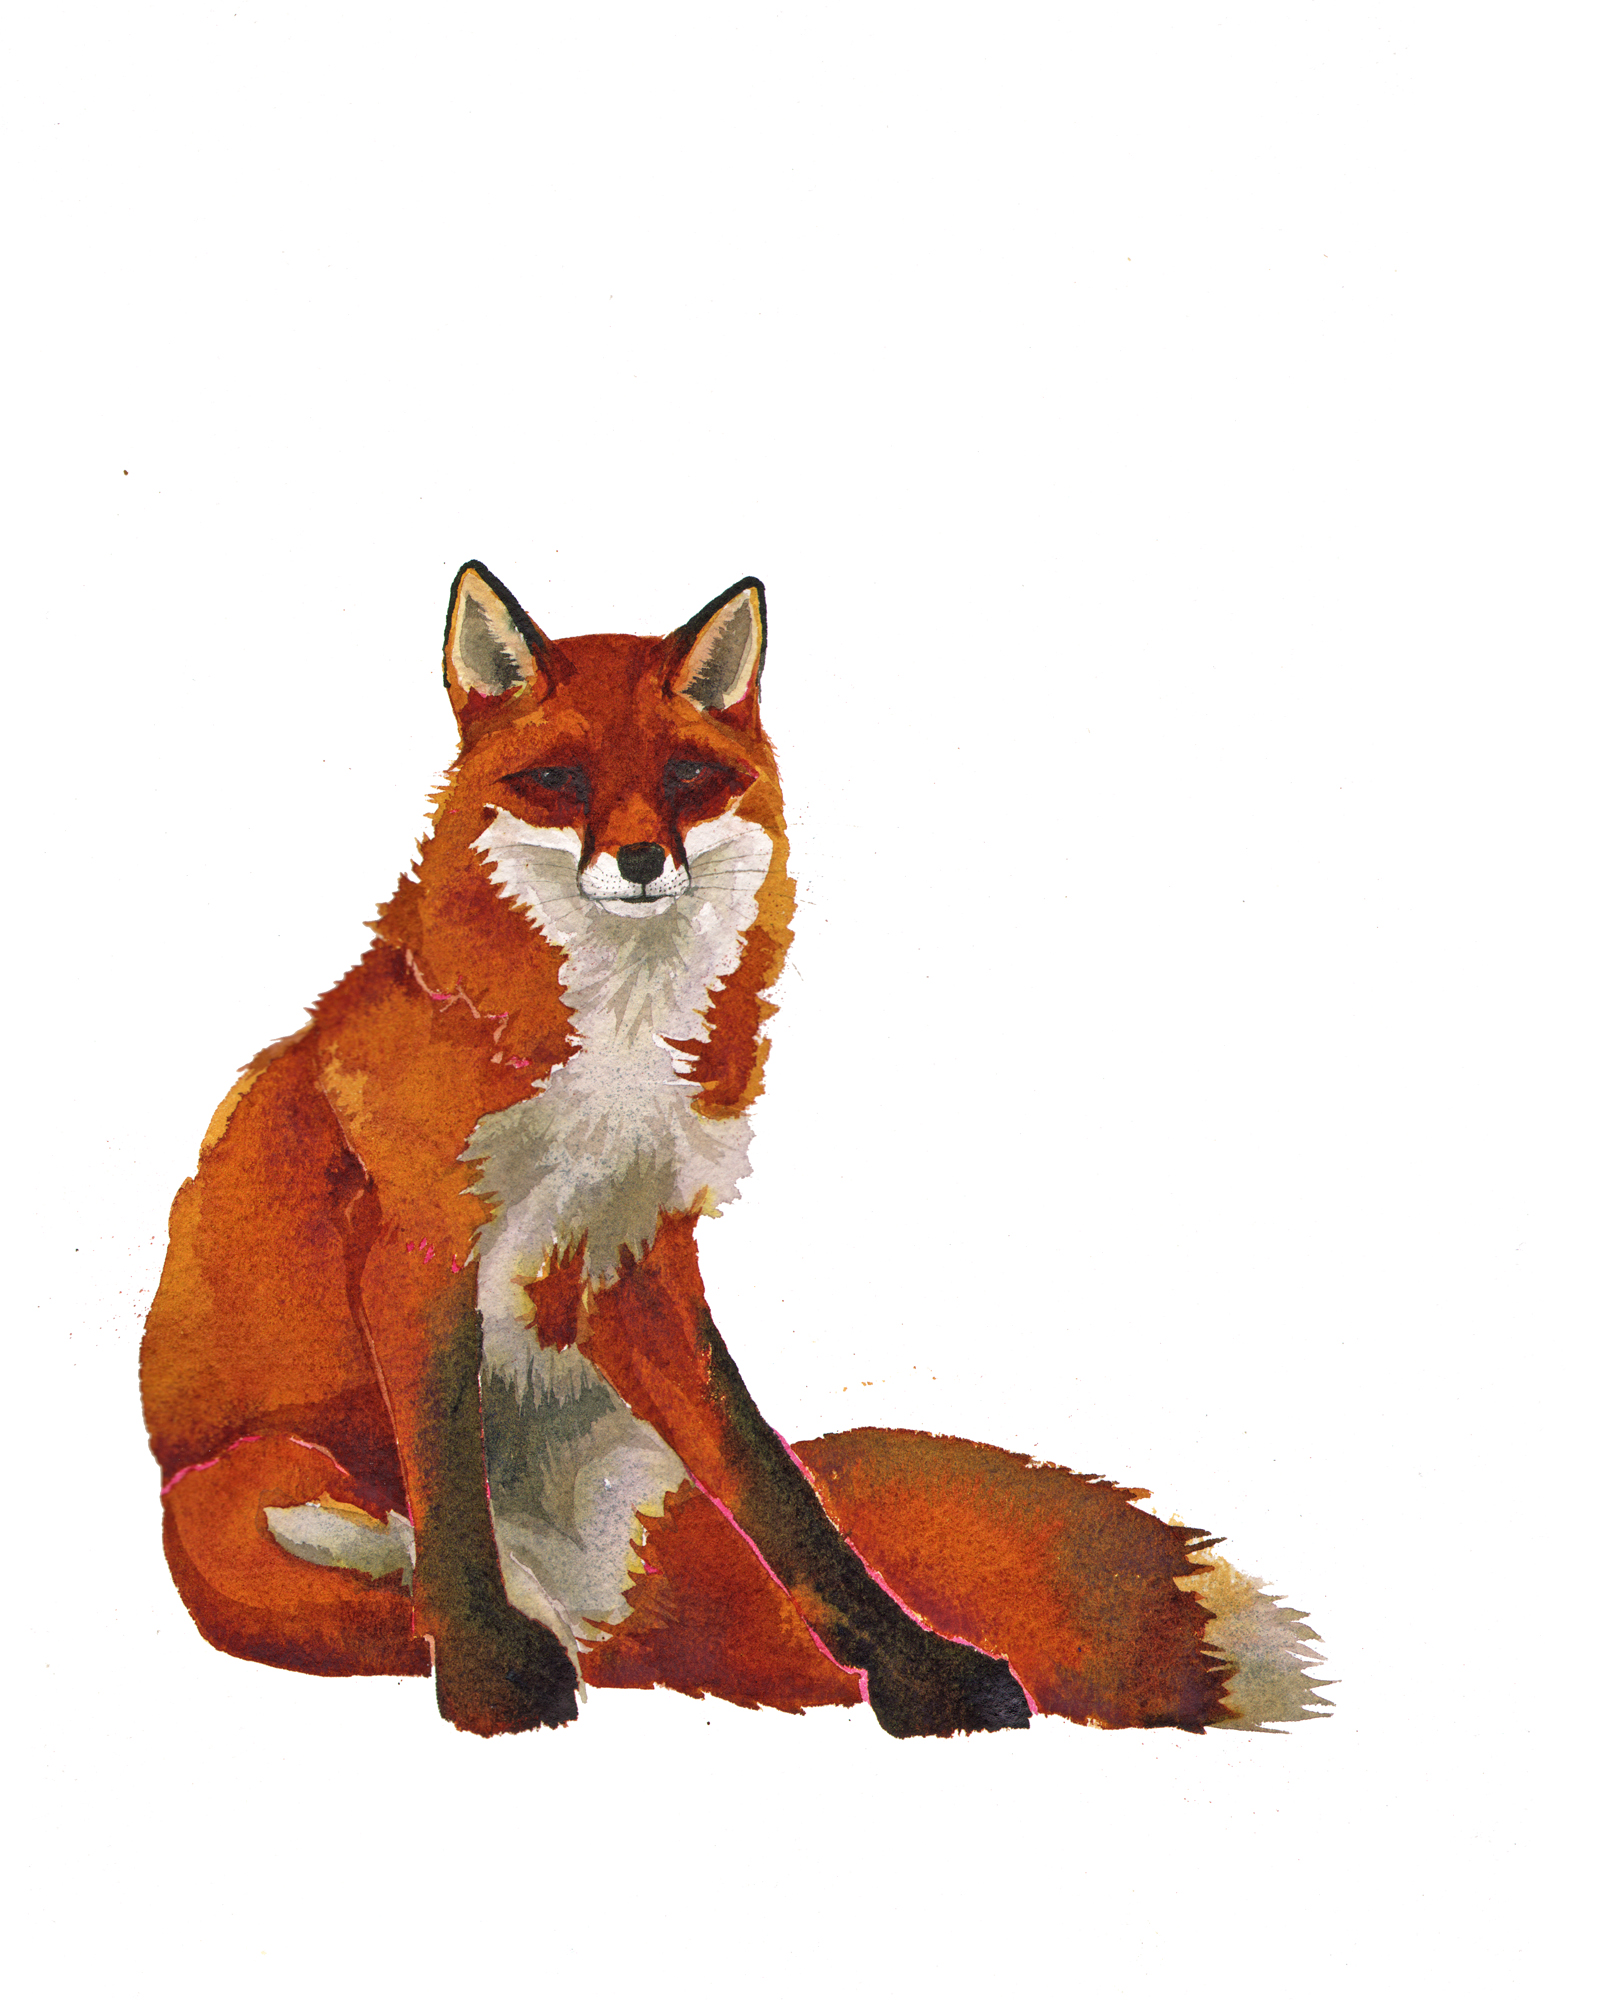 Red Fox, SOLD image